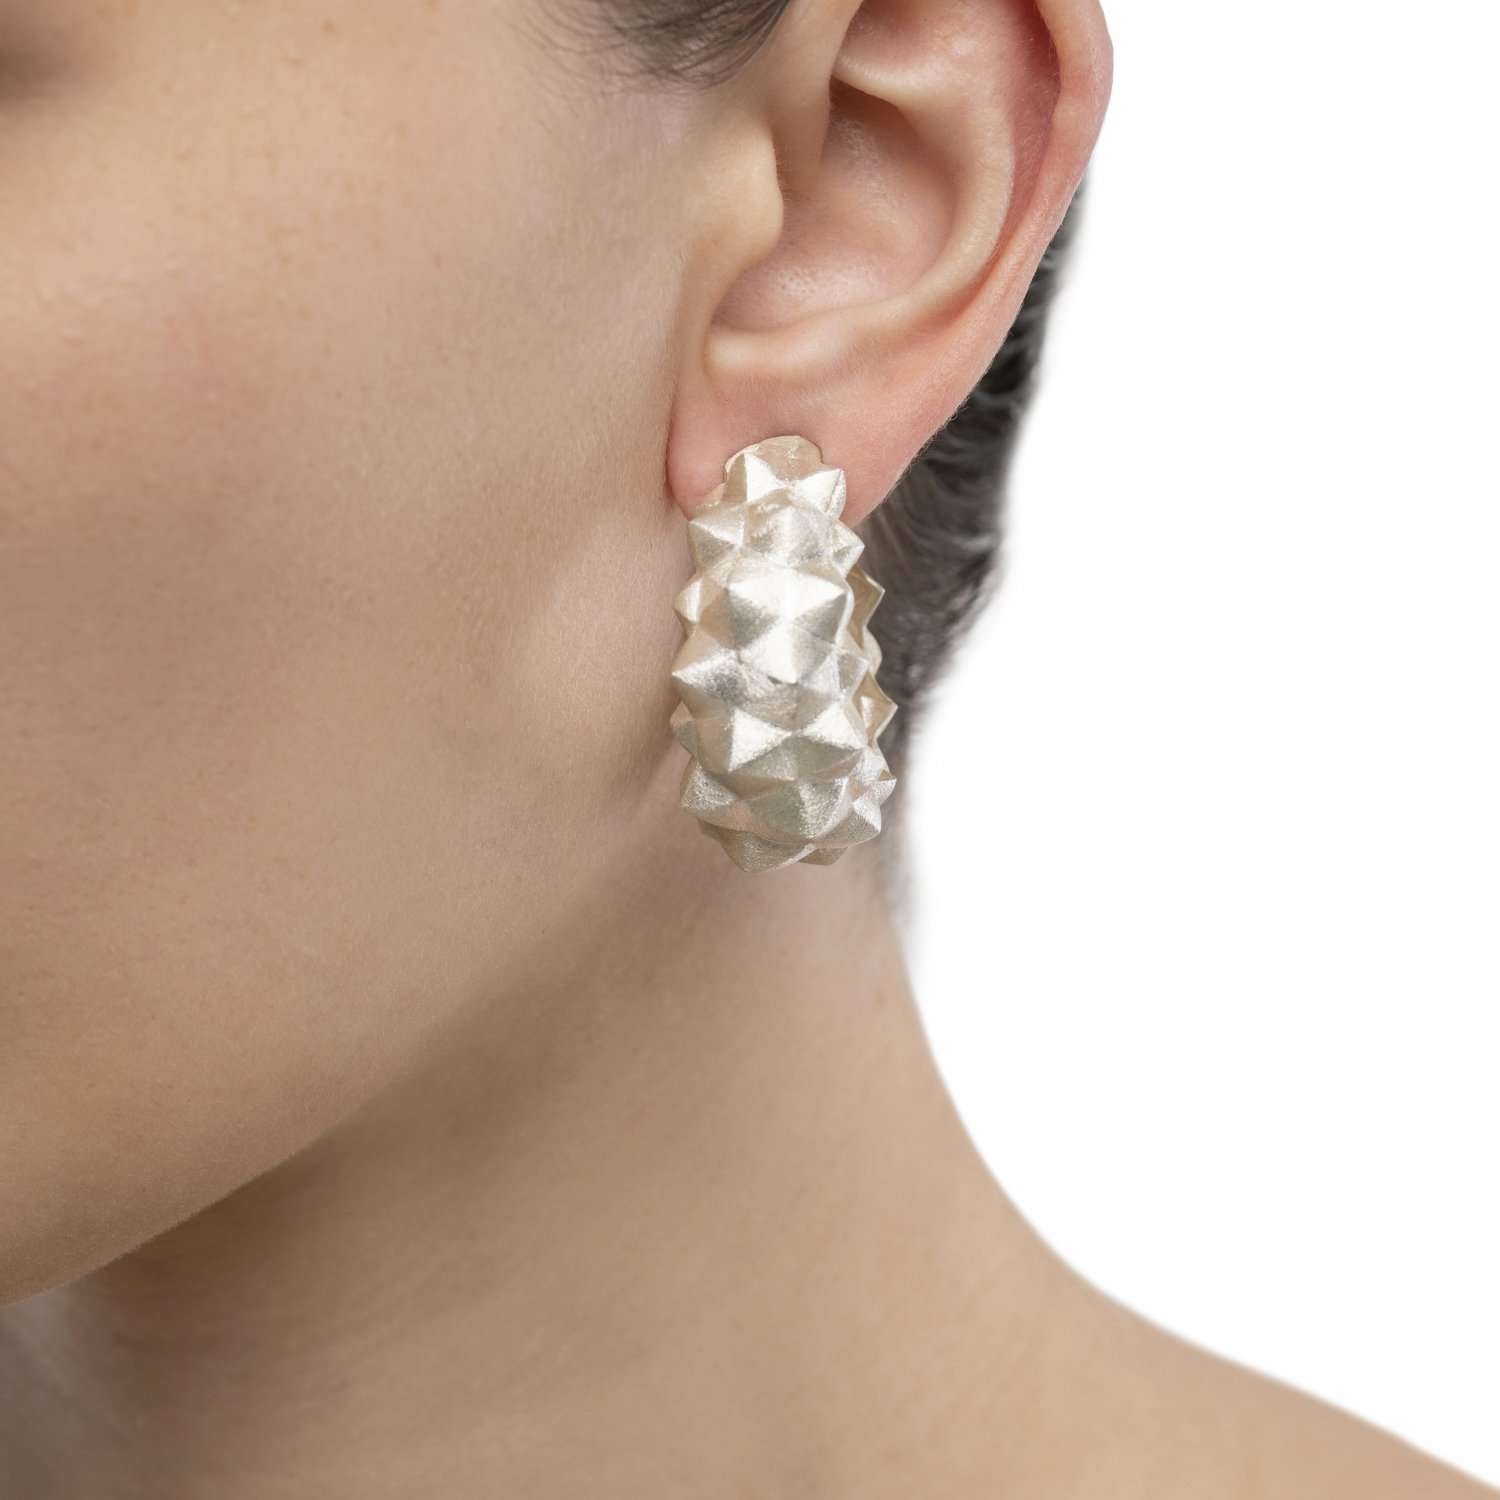 EDGY SILVER EARRINGS